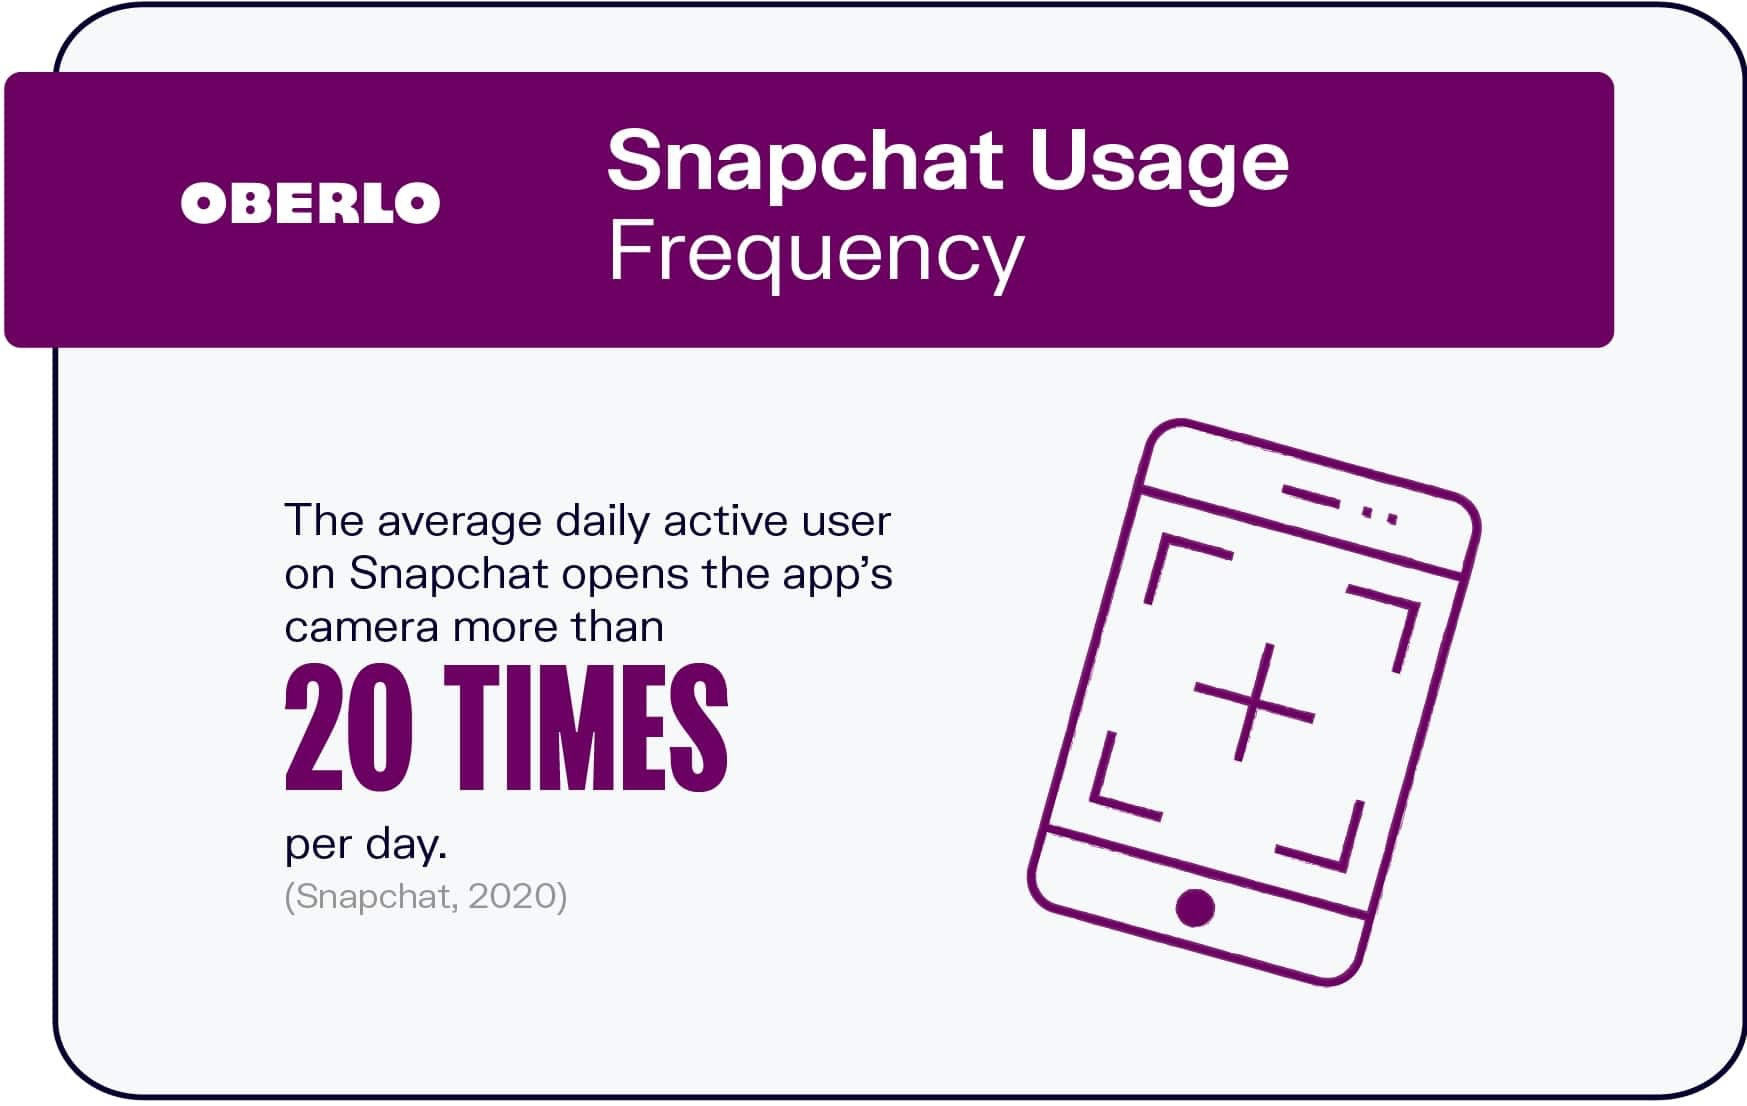 Snapchat Usage Frequency